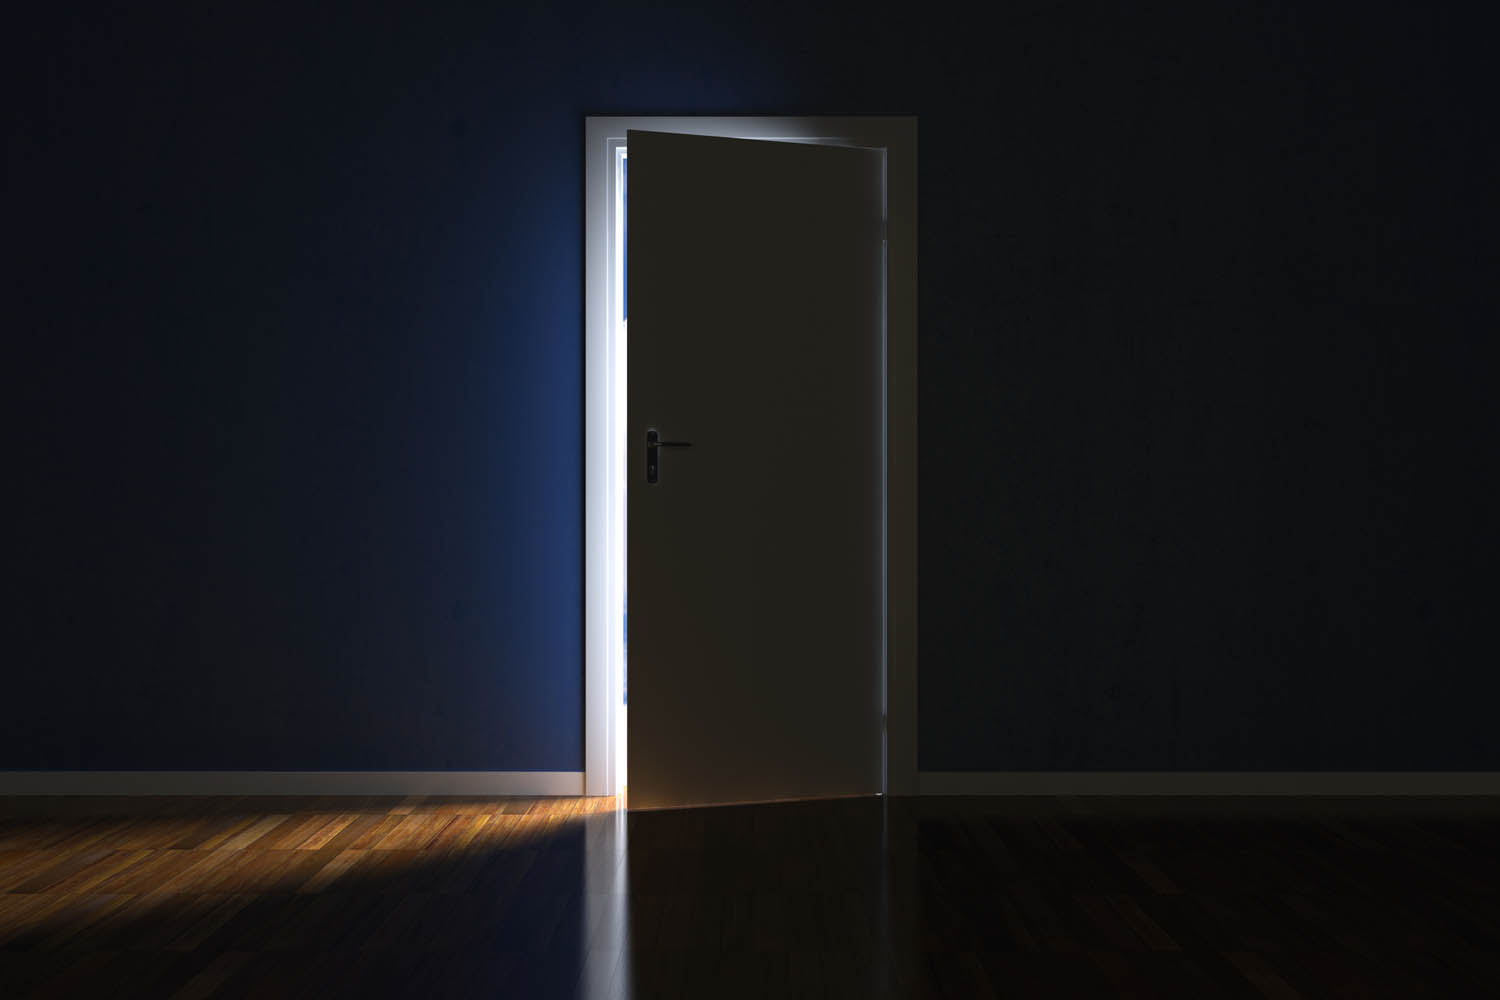 image of a slightly open door with light creeping in